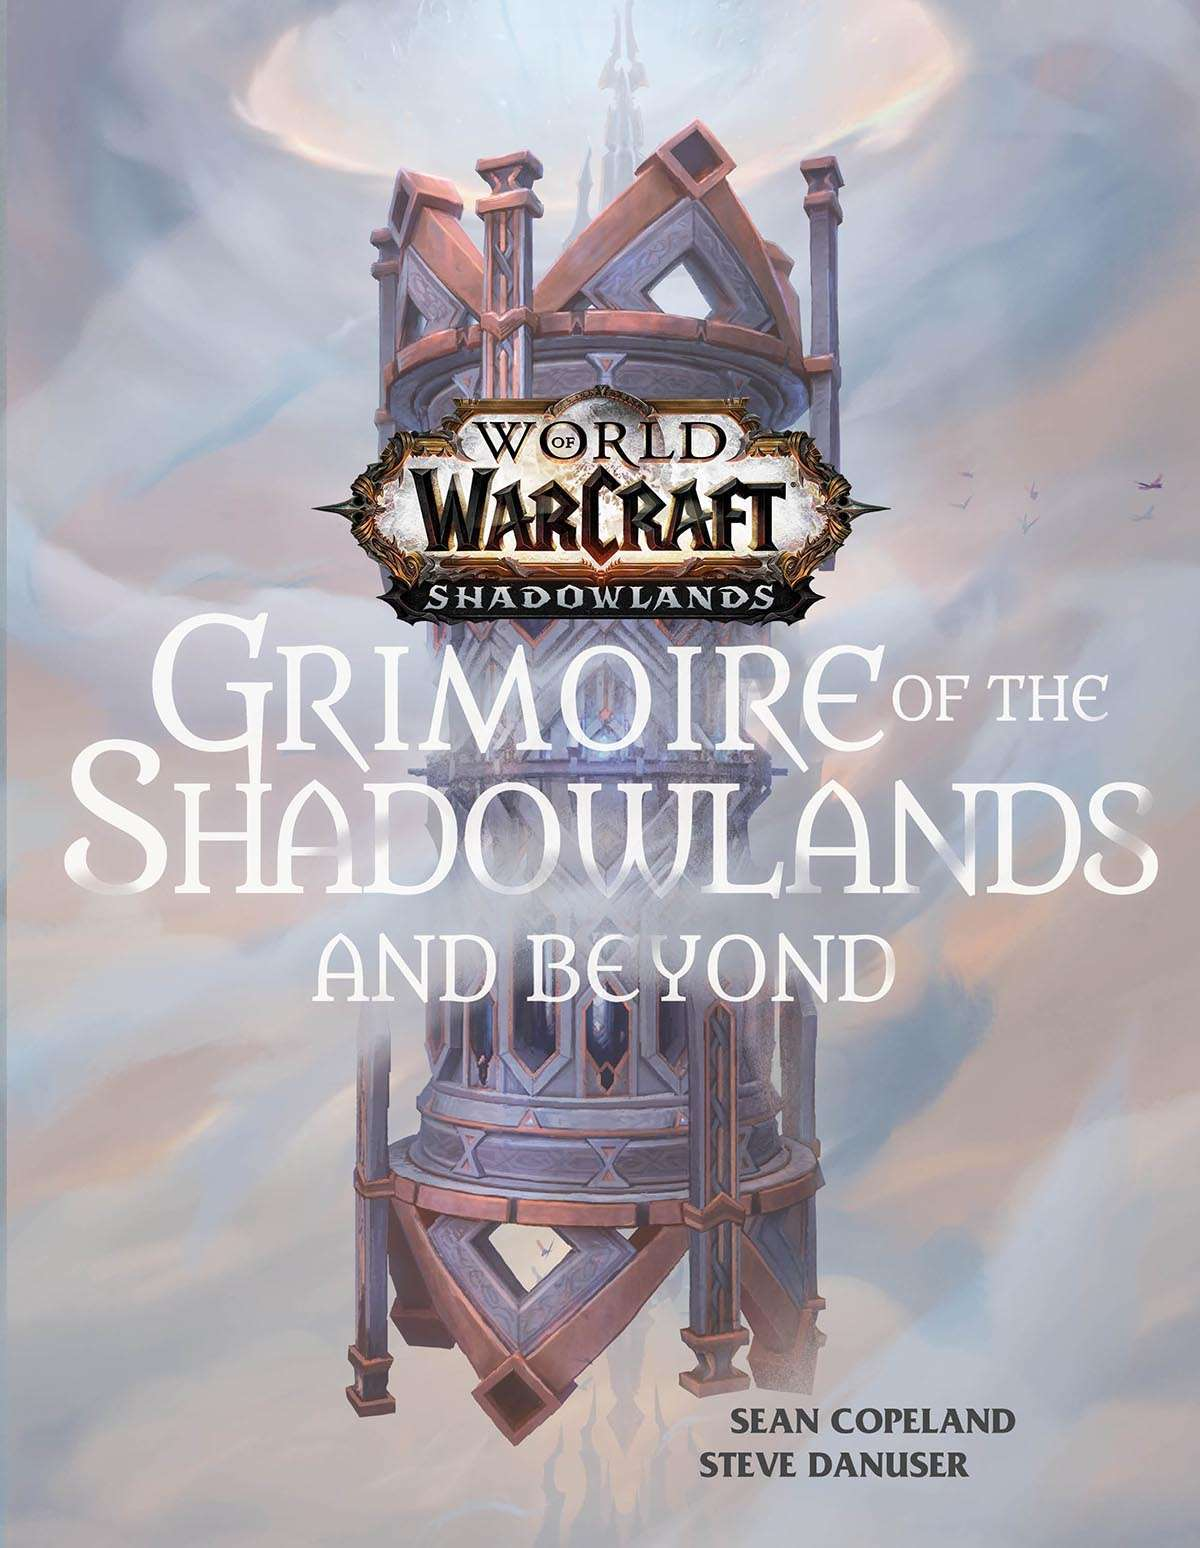 World of Warcraft - Grimoire of the Shadowlands and Beyond